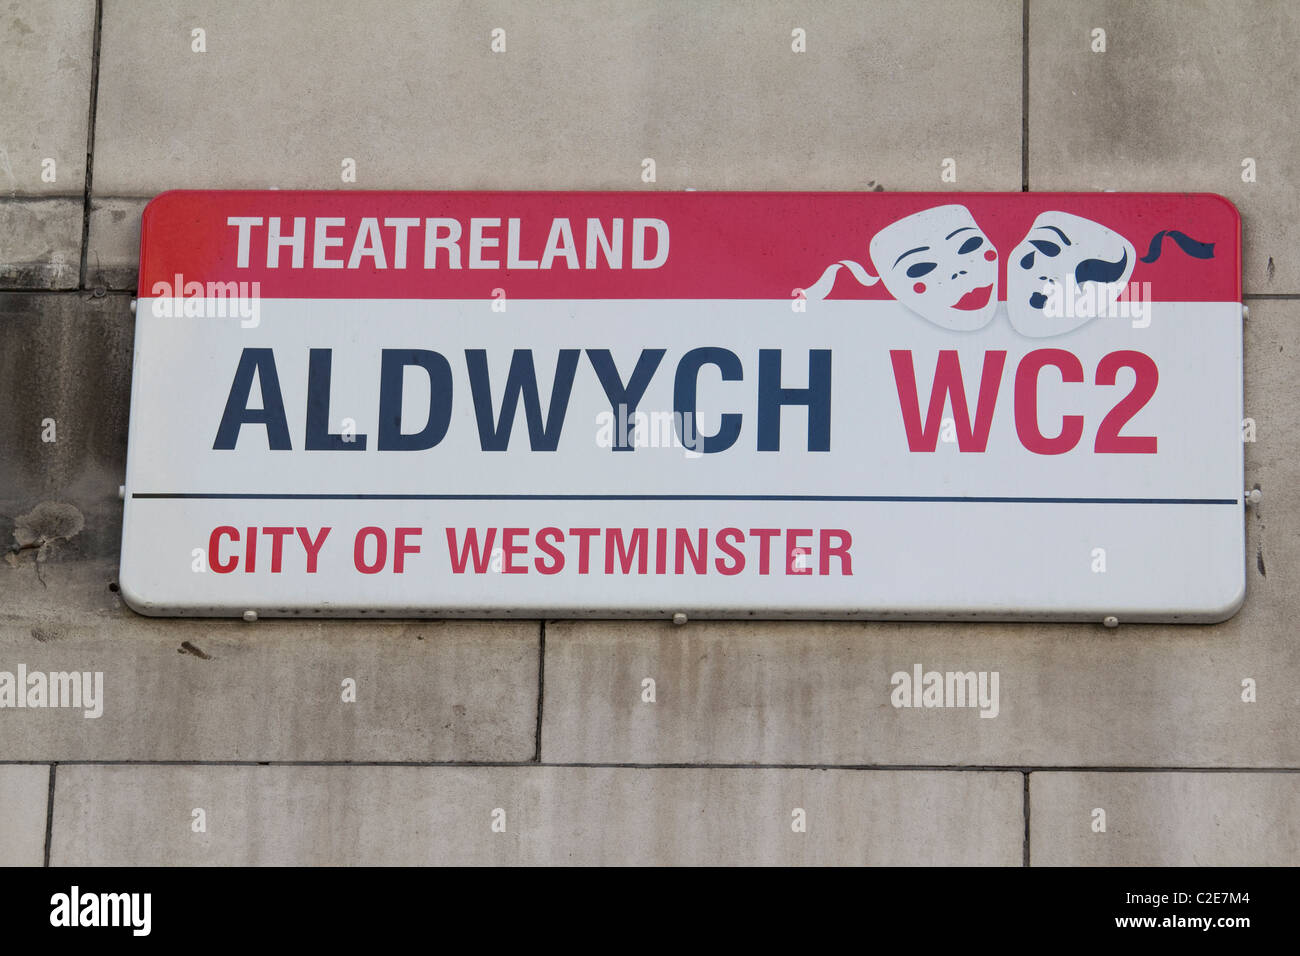 aldwych theatreland street sign London - Stock Image